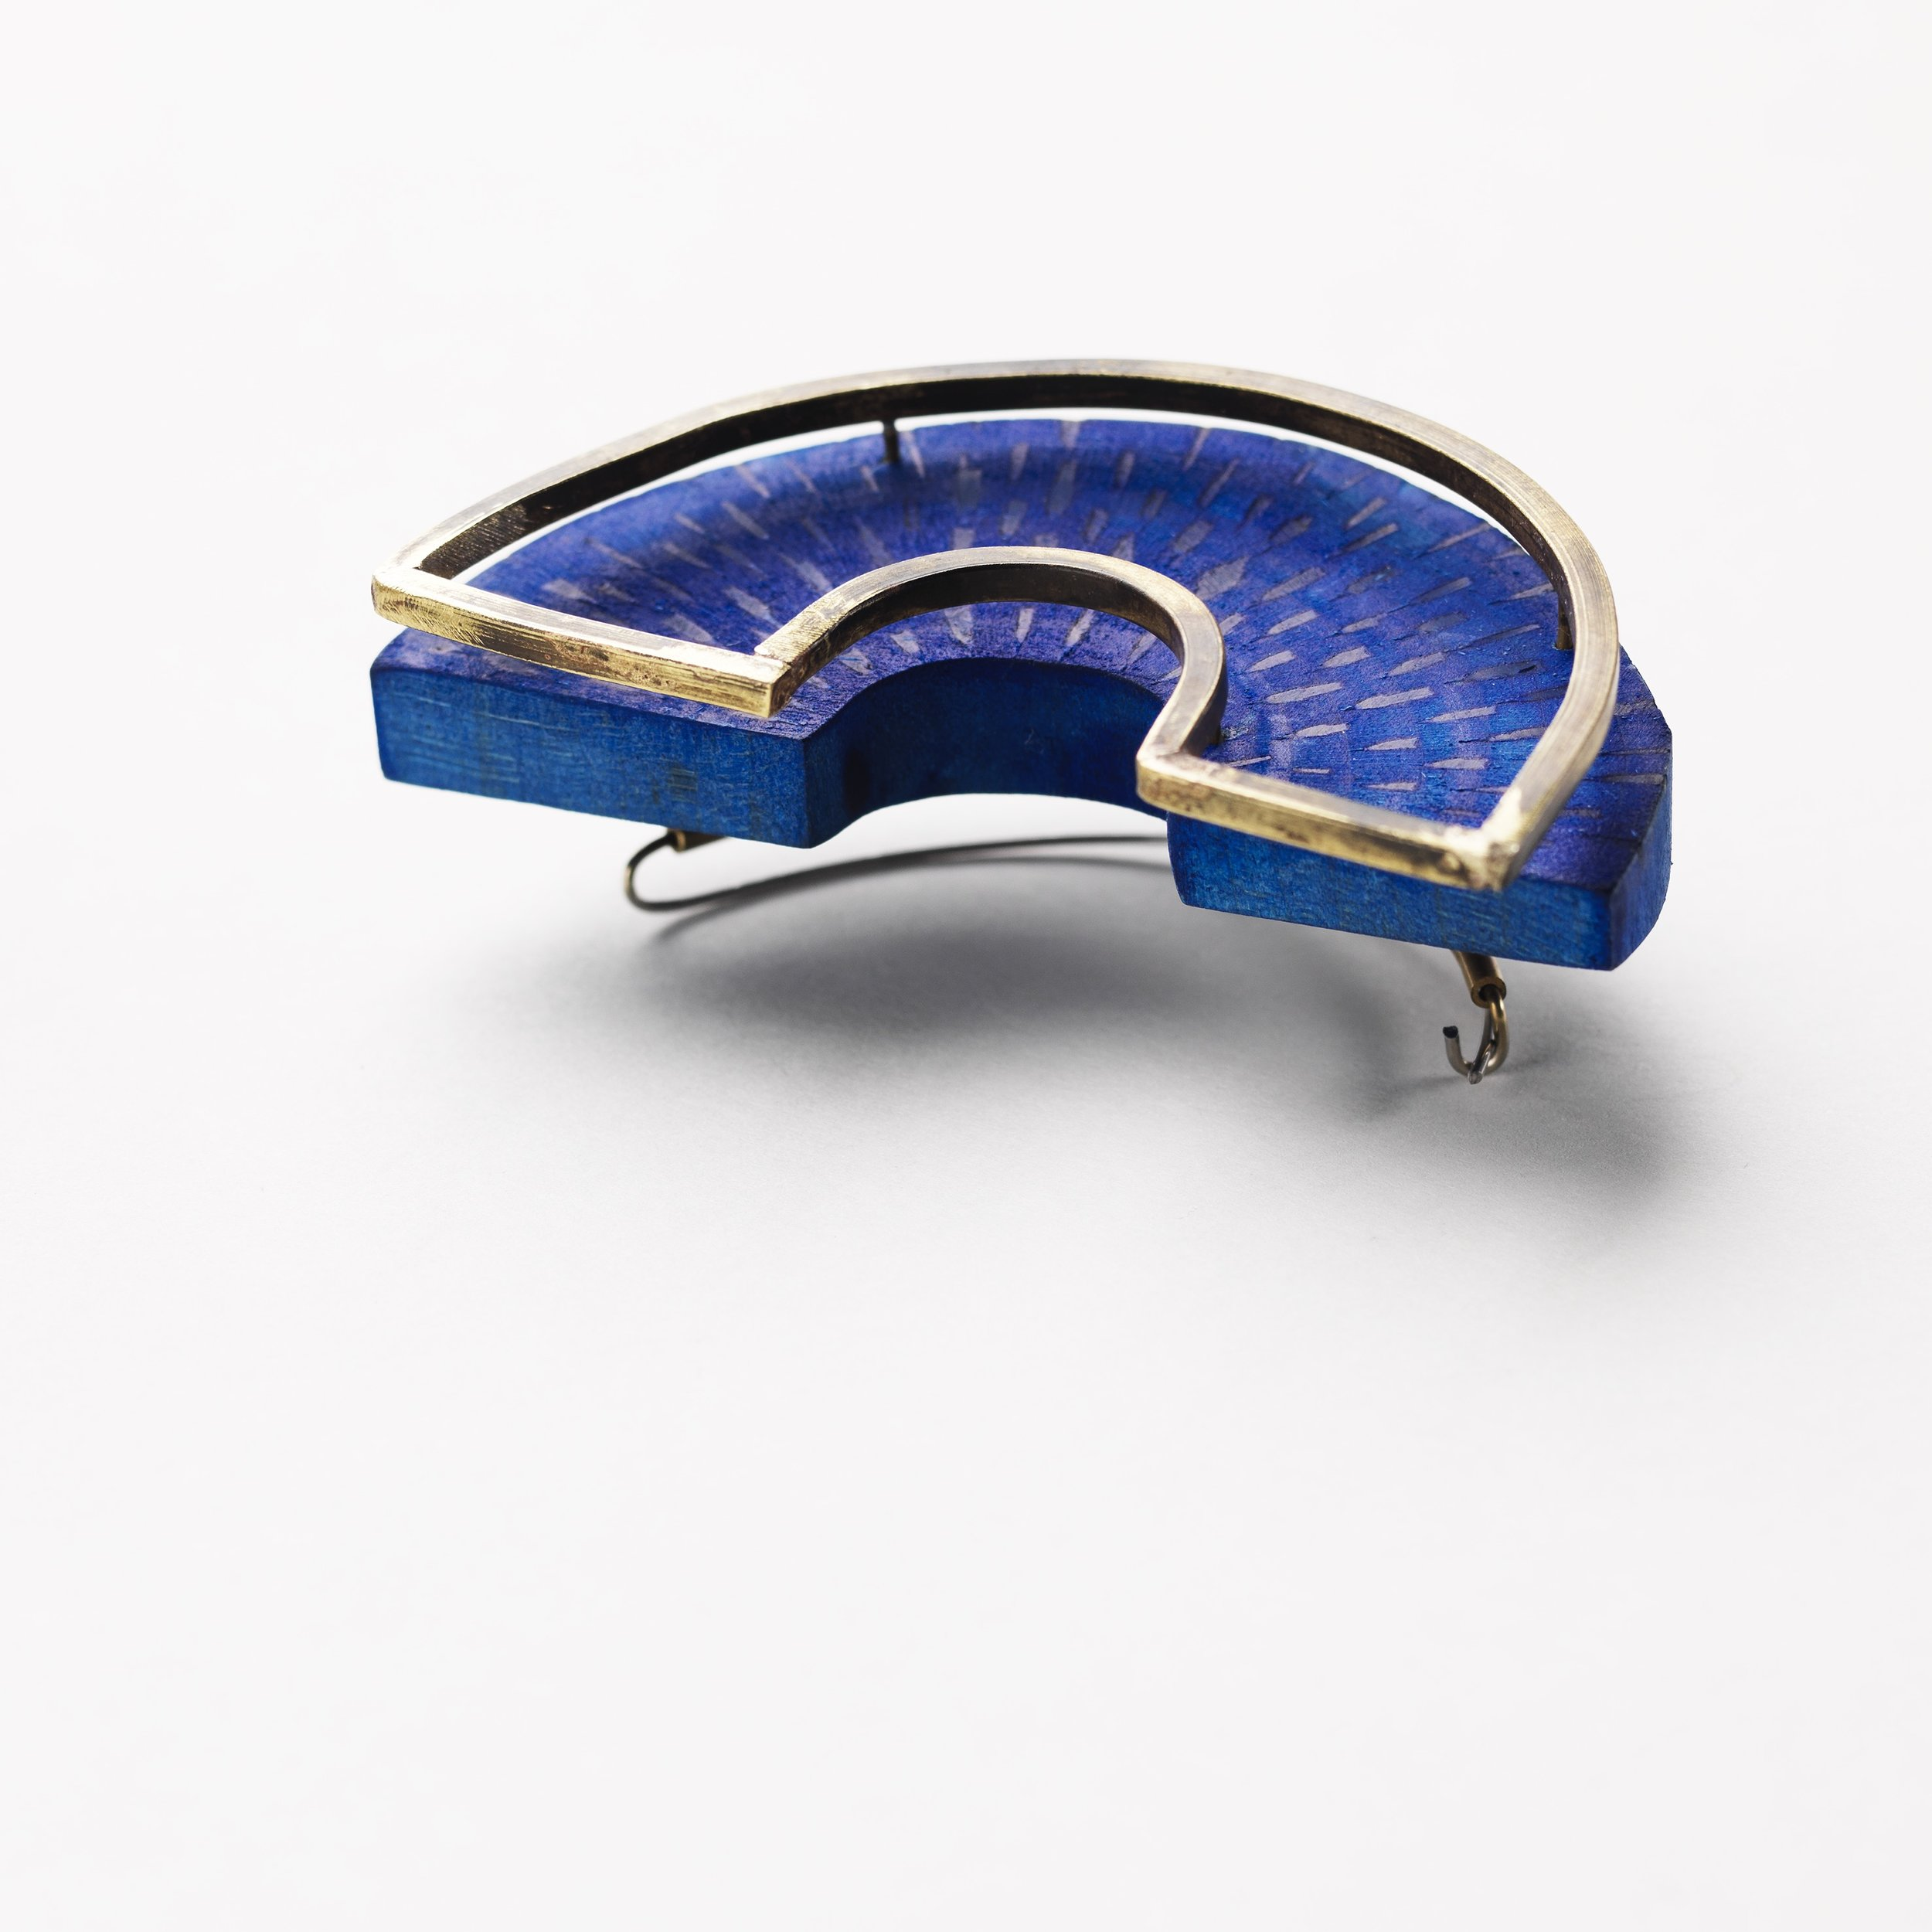 3. C.Hegney, Cerulean Brooch, brass, holly wood, bio-resin.jpg